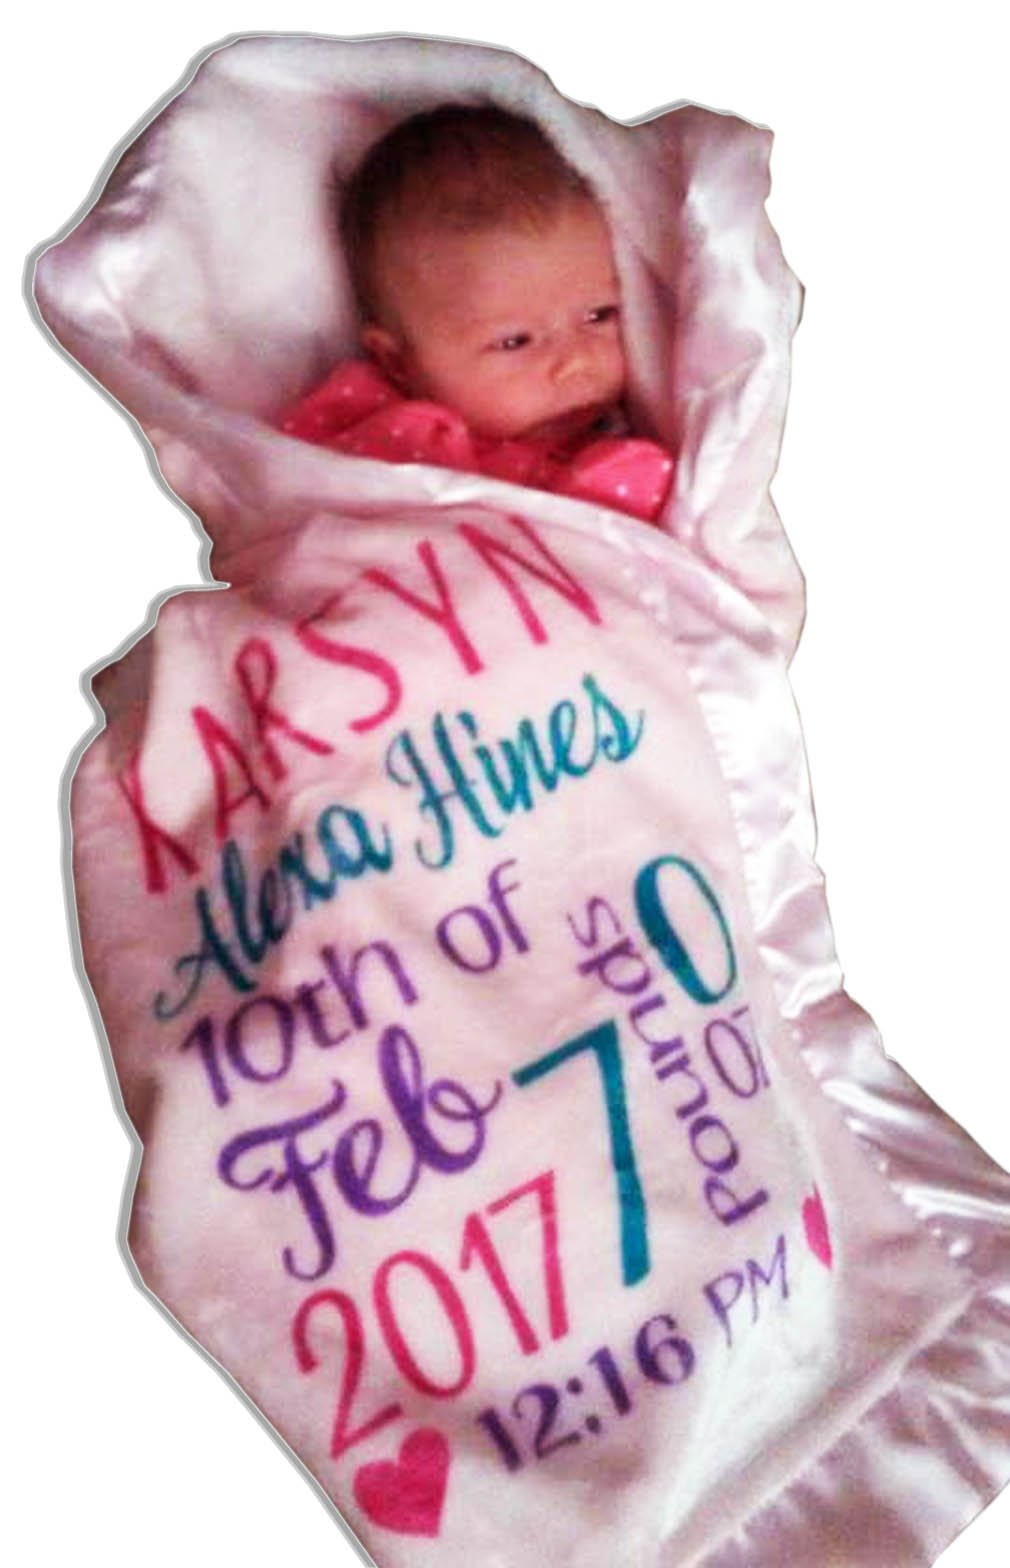 Personalized Baby Blankets ( 30''x40'', Pink Micro Plush Fleece with Satin Edge) for Girls Custom Printed With Name Birth Special Gifts for Newborn Baby Room Nursery Christening or Baptism